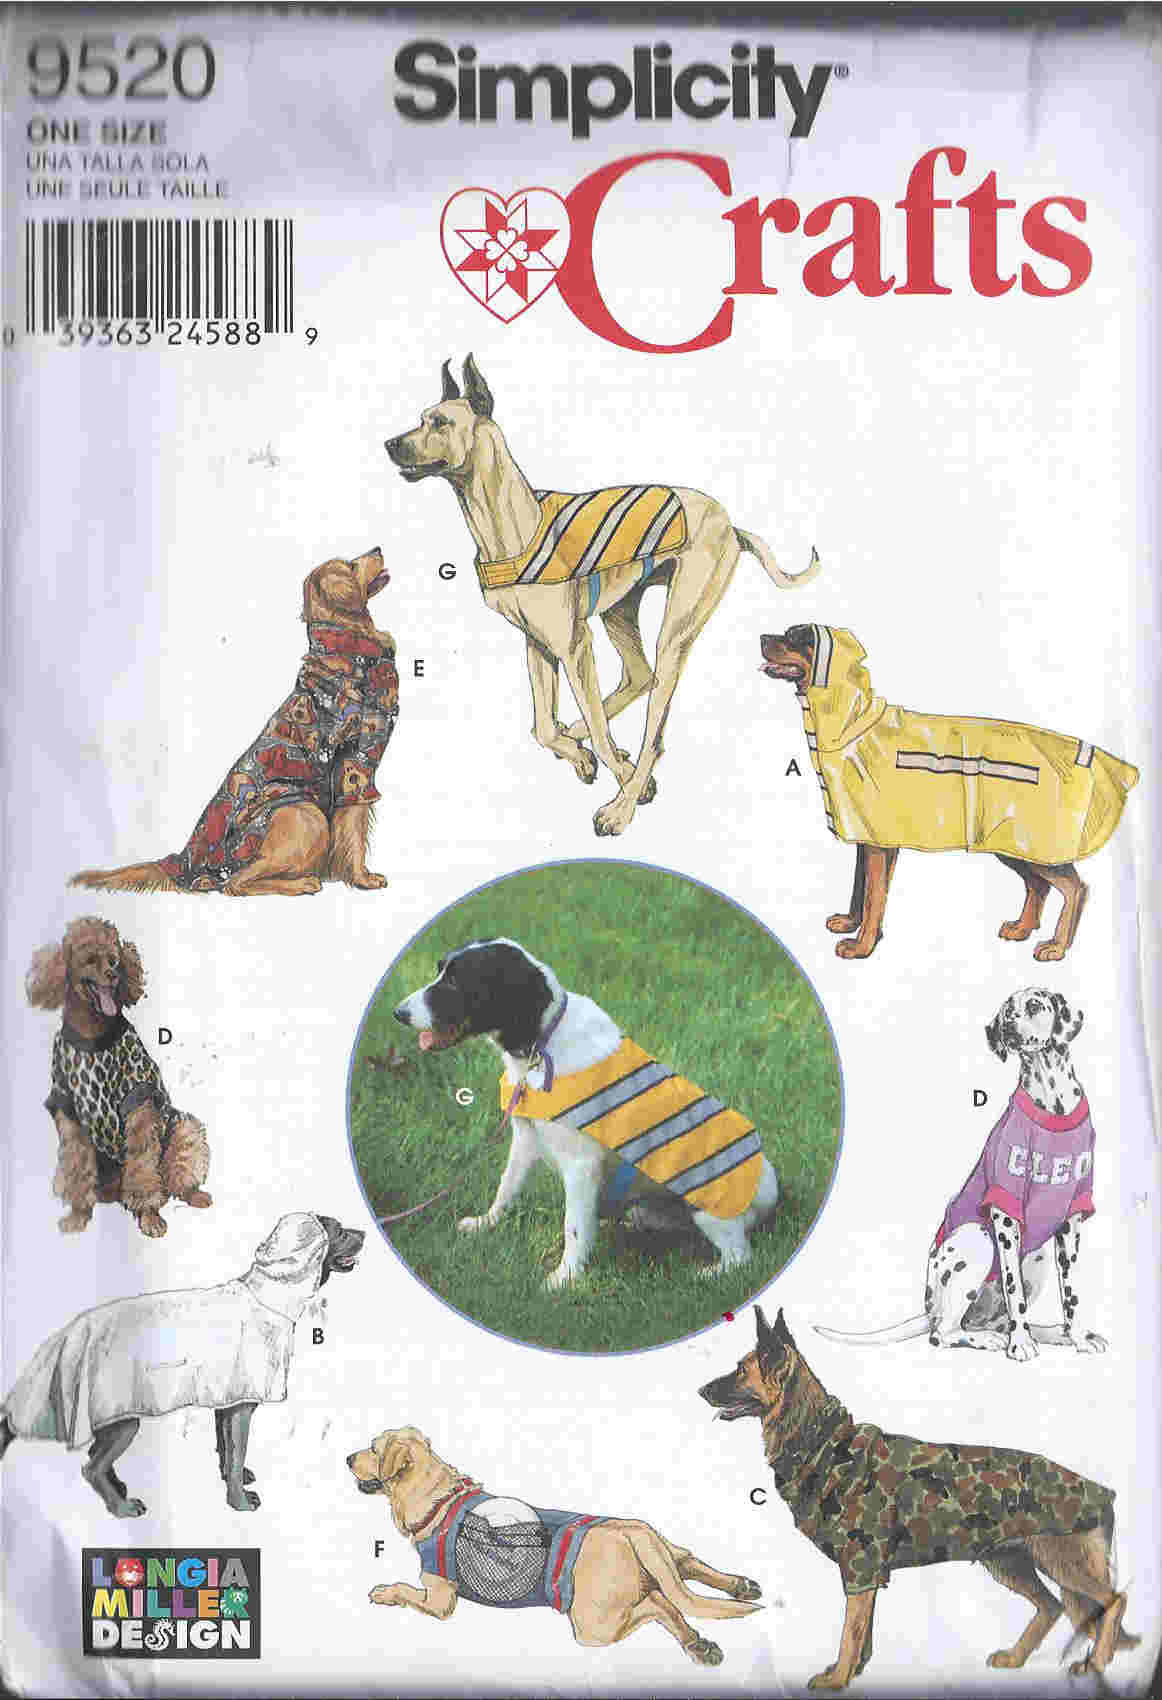 longia miller dog clothes sewing pattern